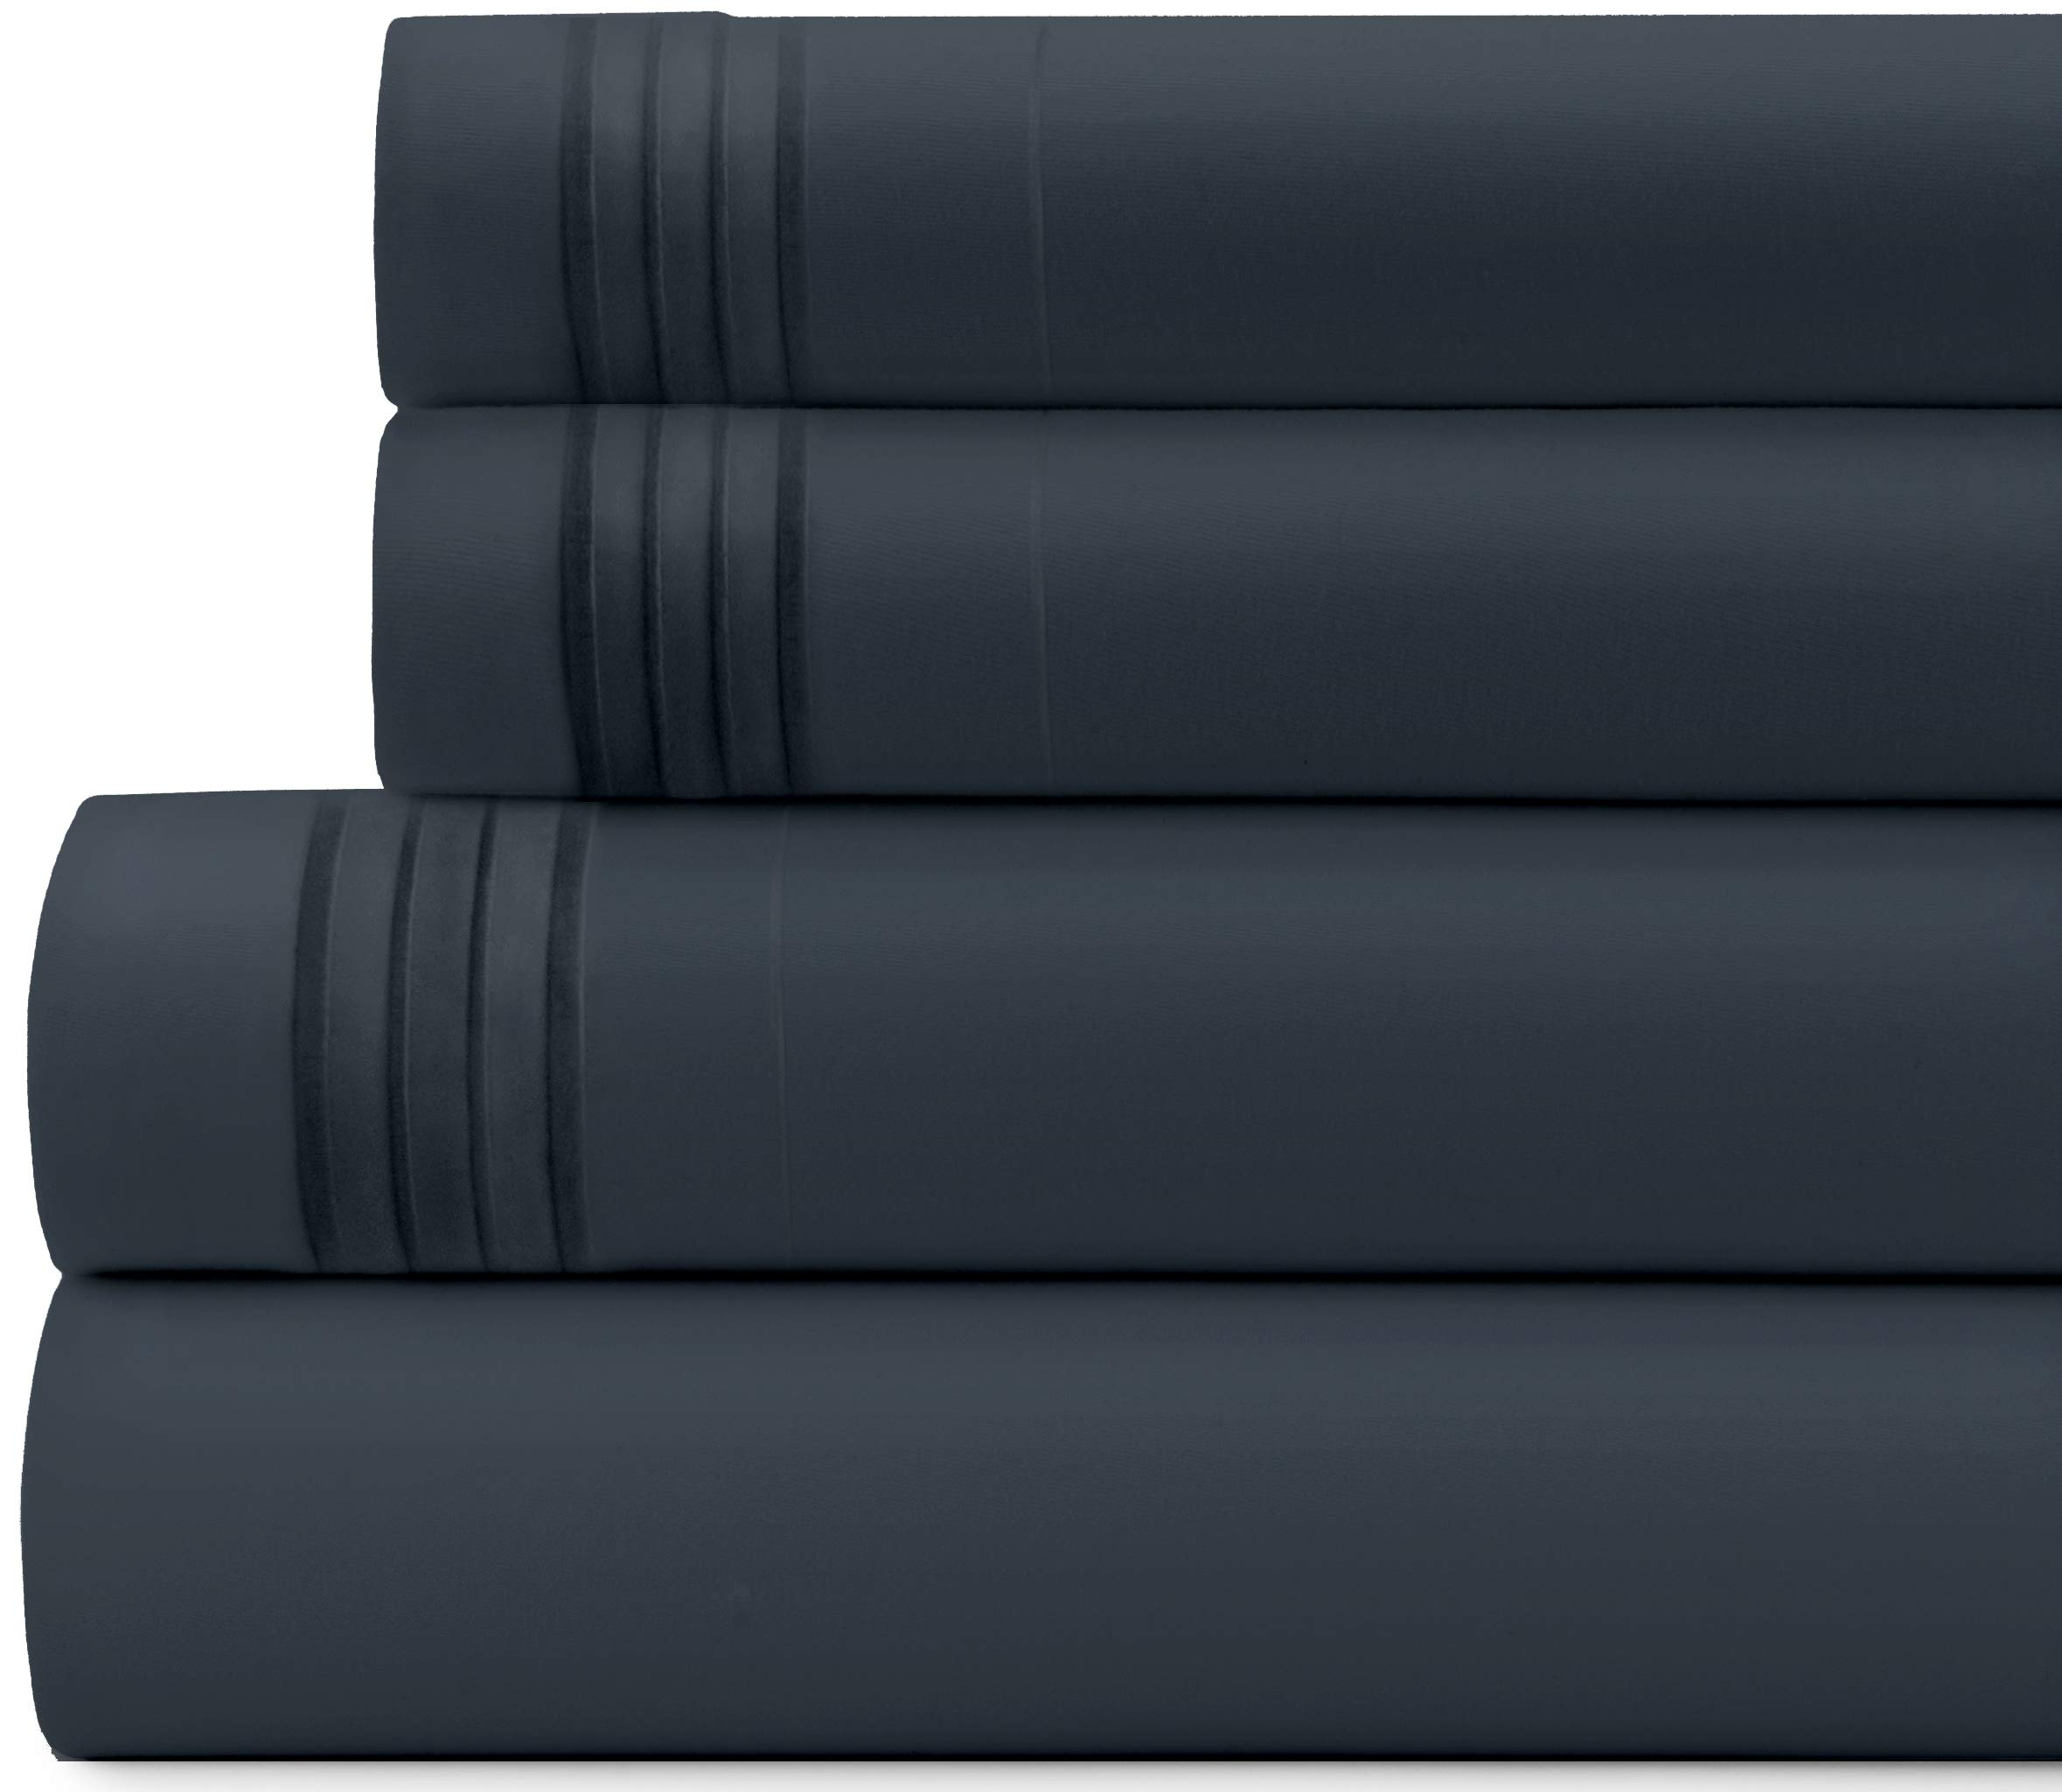 Briarwood Home Bed Sheet Set – Brushed Microfiber 1900 Premium Quality Soft Fabric Breathable Bedding – Deep Pocket – Wrinkle, Fade & Shrinkage Resistant 4 Piece Sheets (Twin/Charcoal)